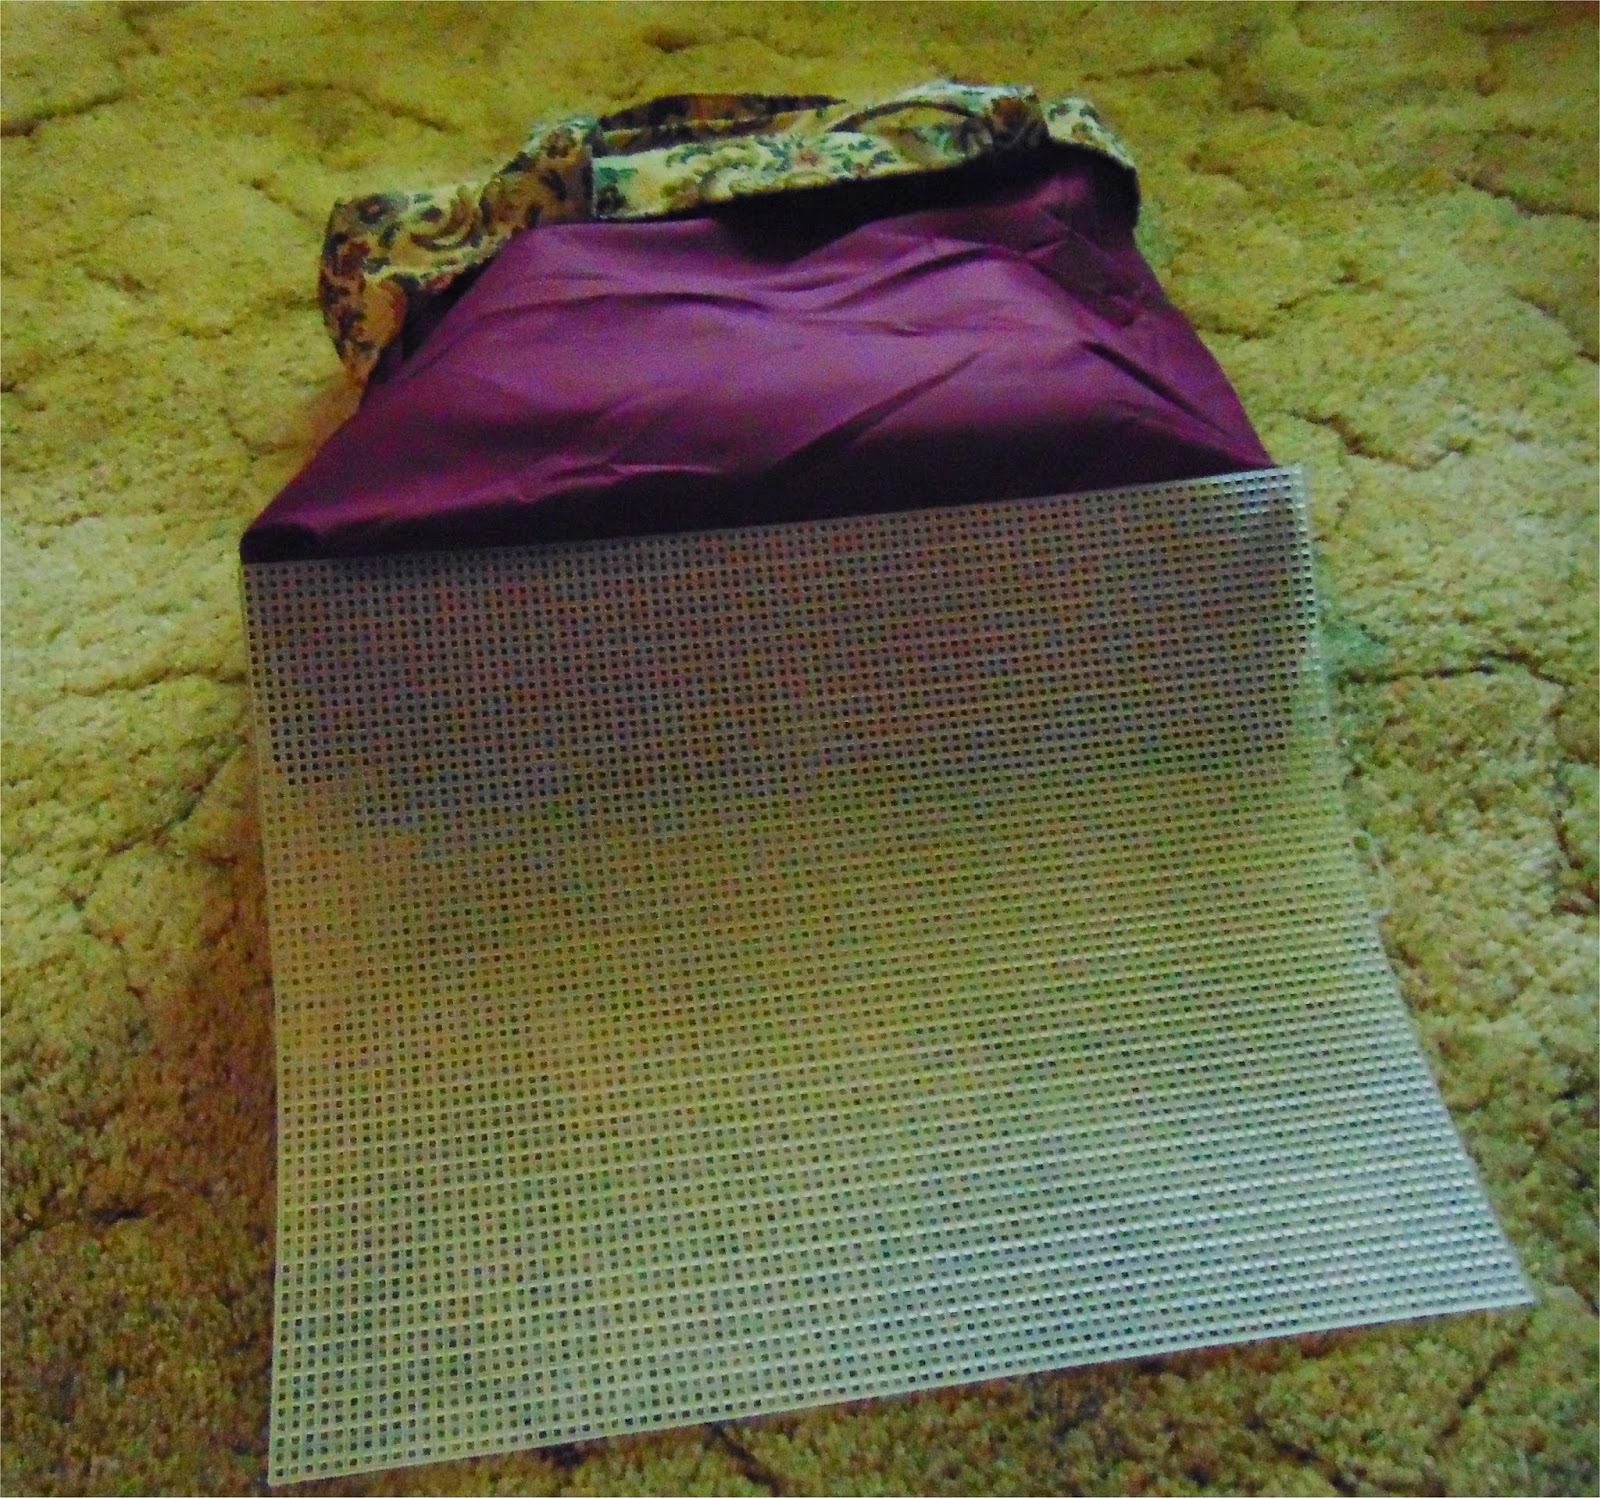 Lining of Tote Bag with Sheet of Plastic Canvas